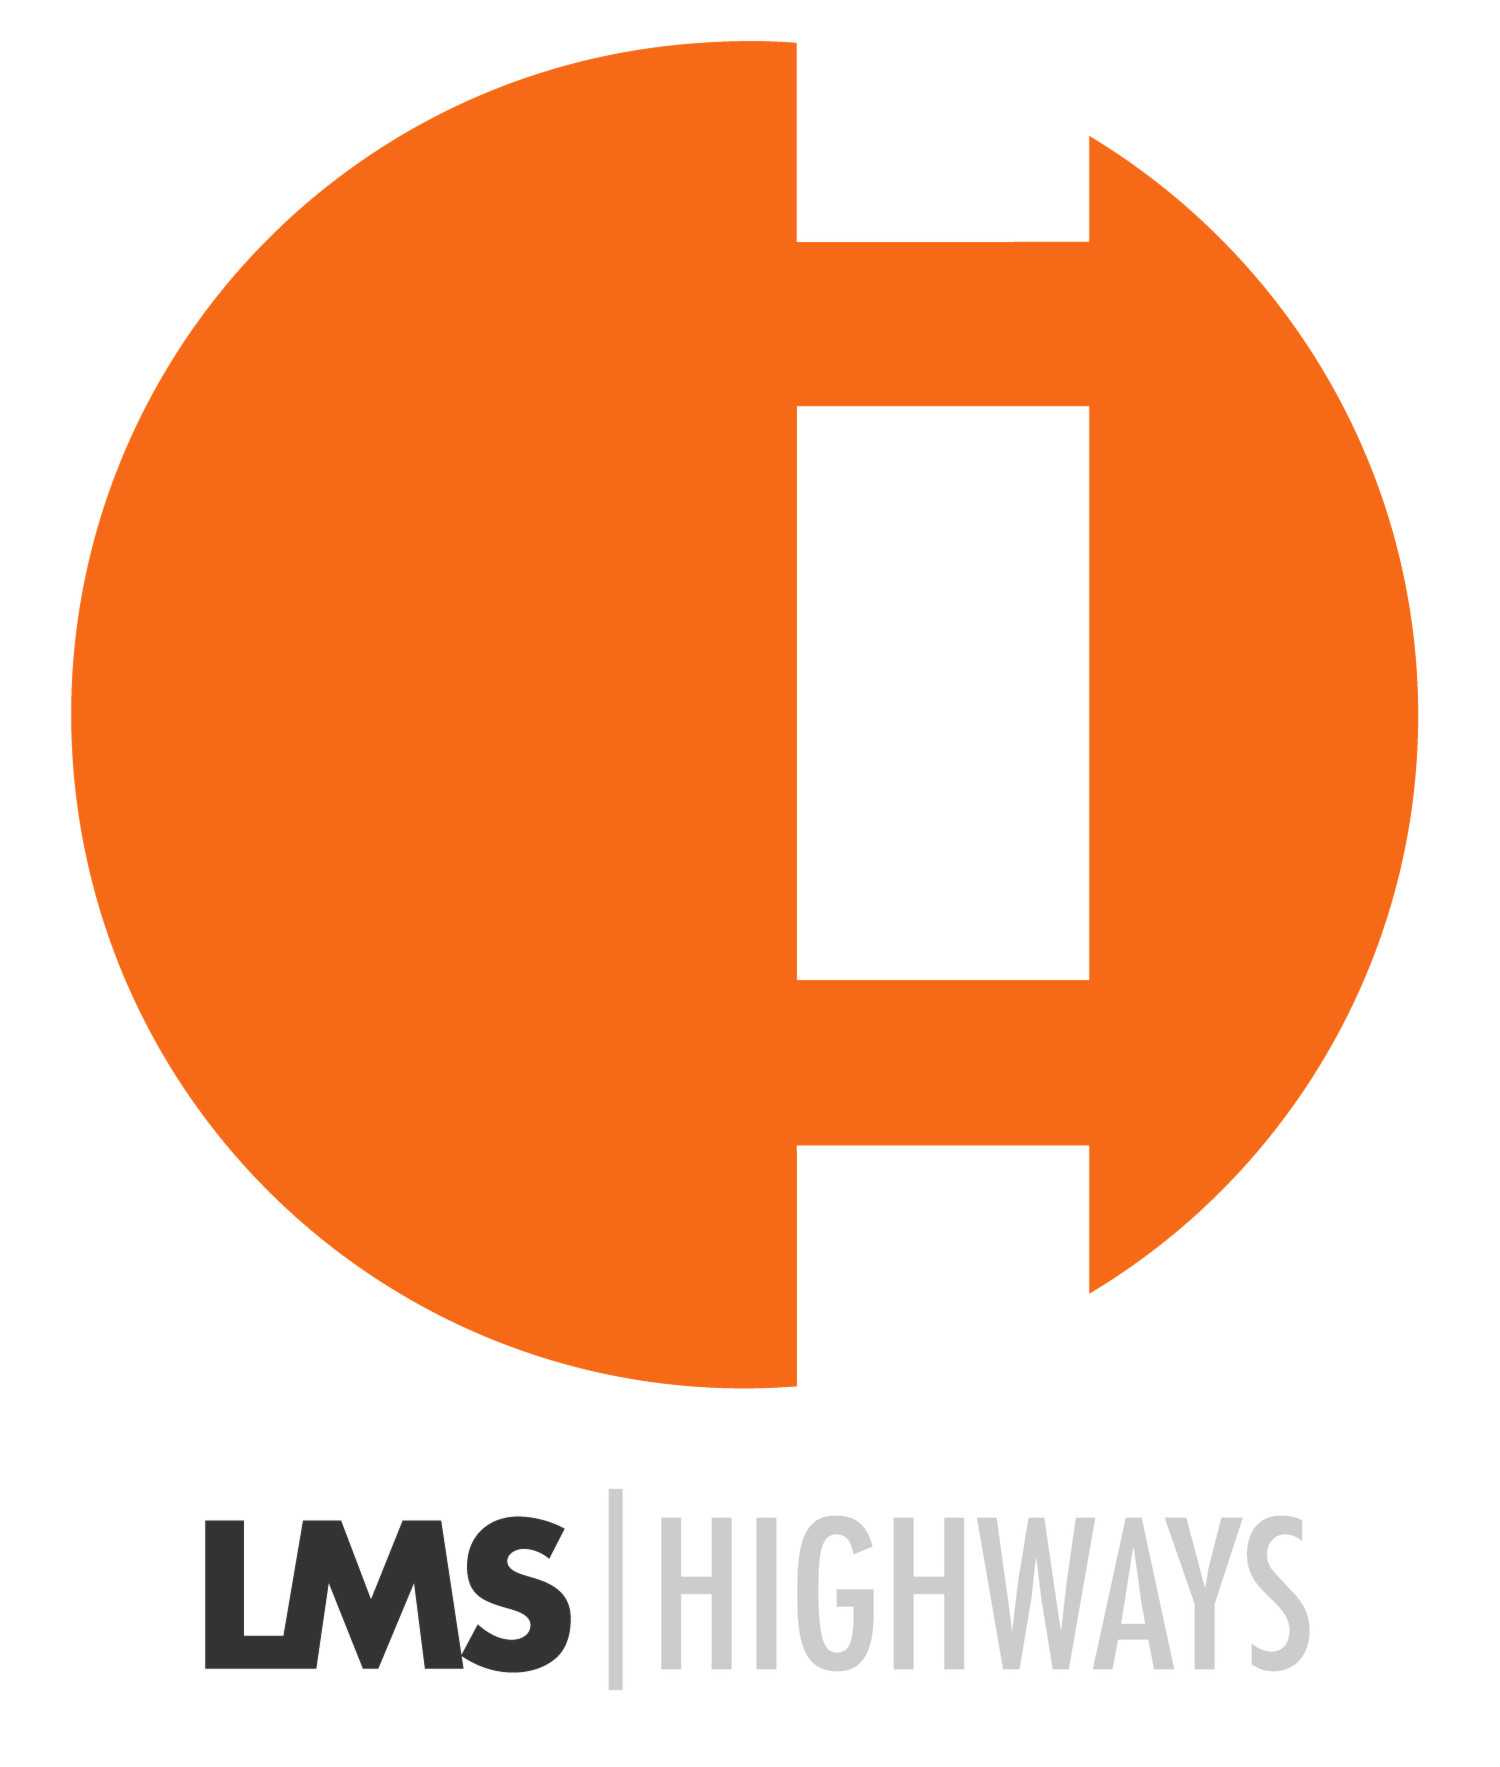 LMS Highways